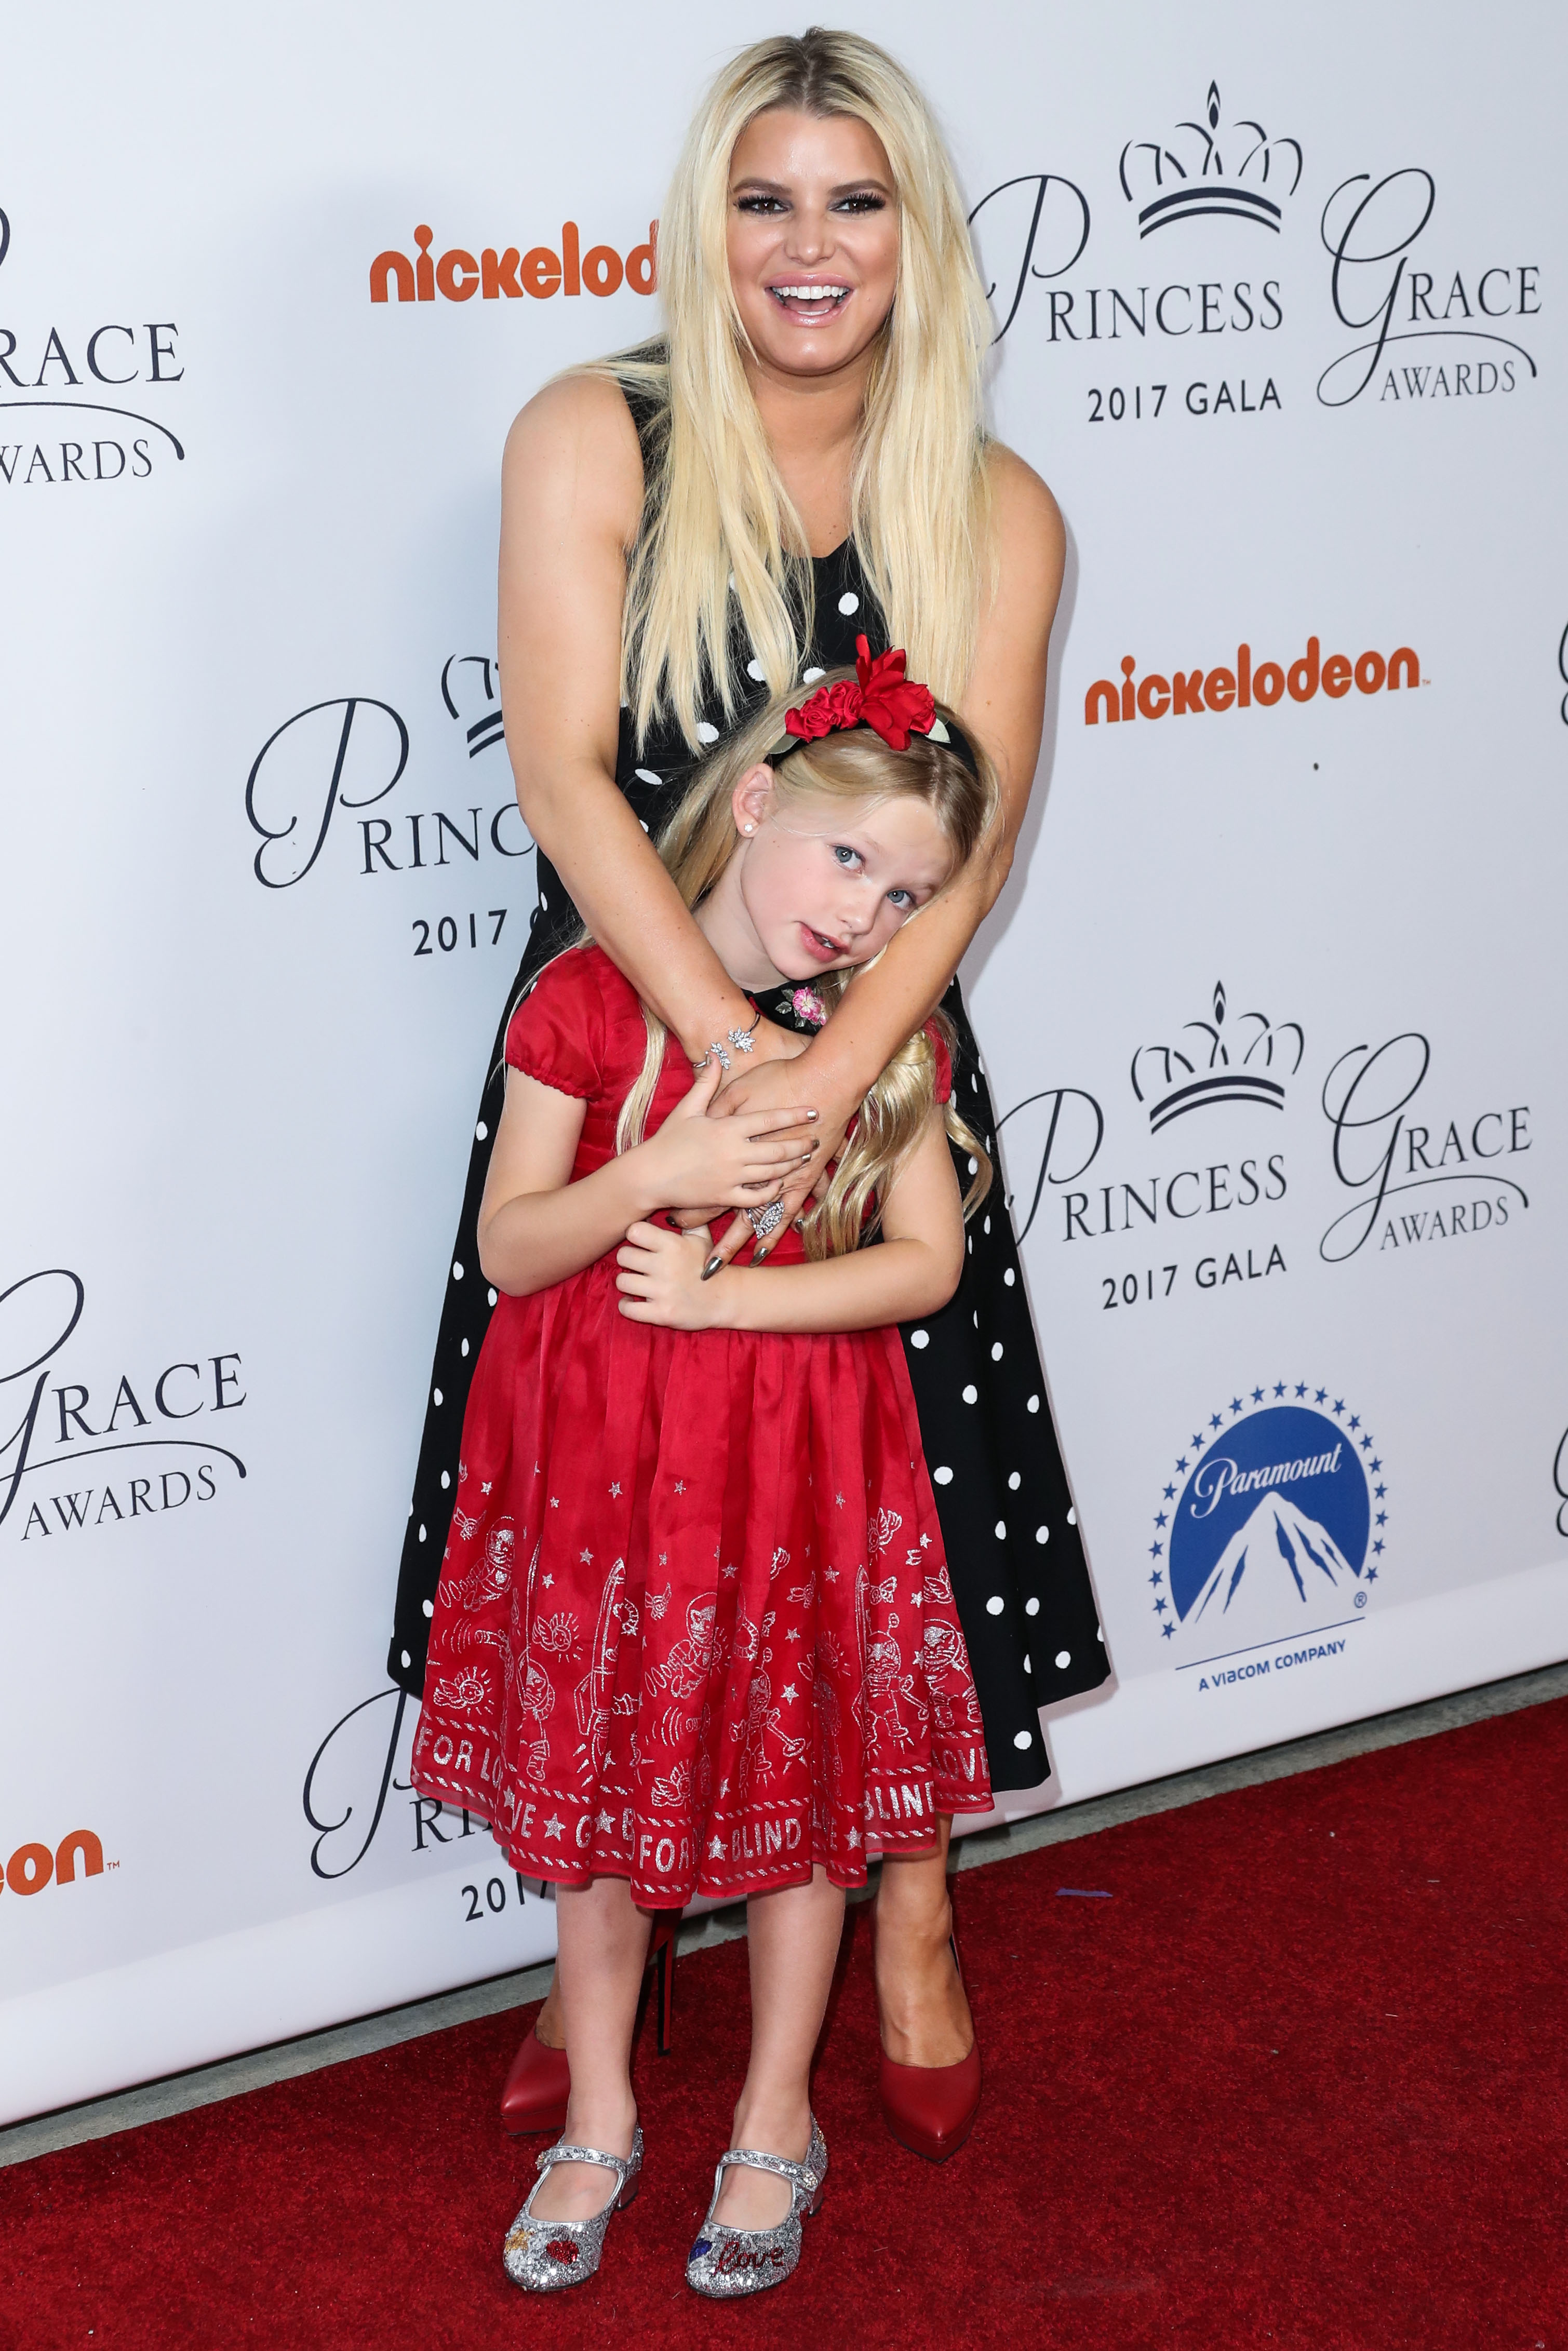 HOLLYWOOD, LOS ANGELES, CA, USA - OCTOBER 24: Singer/actress Jessica Simpson and daughter Maxwell Johnson arrive at the 2017 Princess Grace Awards Gala Kickoff Event held at Paramount Studios on October 24, 2017 in Hollywood, Los Angeles, California, United States. (Photo by Xavier Collin/Image Press Agency/Splash News) <P> Pictured: Jessica Simpson, Maxwell Johnson <B>Ref: SPL1609082  241017  </B><BR/> Picture by: Xavier Collin/IPA/Splash News<BR/> </P><P> <B>Splash News and Pictures</B><BR/> Los Angeles:310-821-2666<BR/> New York:212-619-2666<BR/> London:870-934-2666<BR/> <span id=